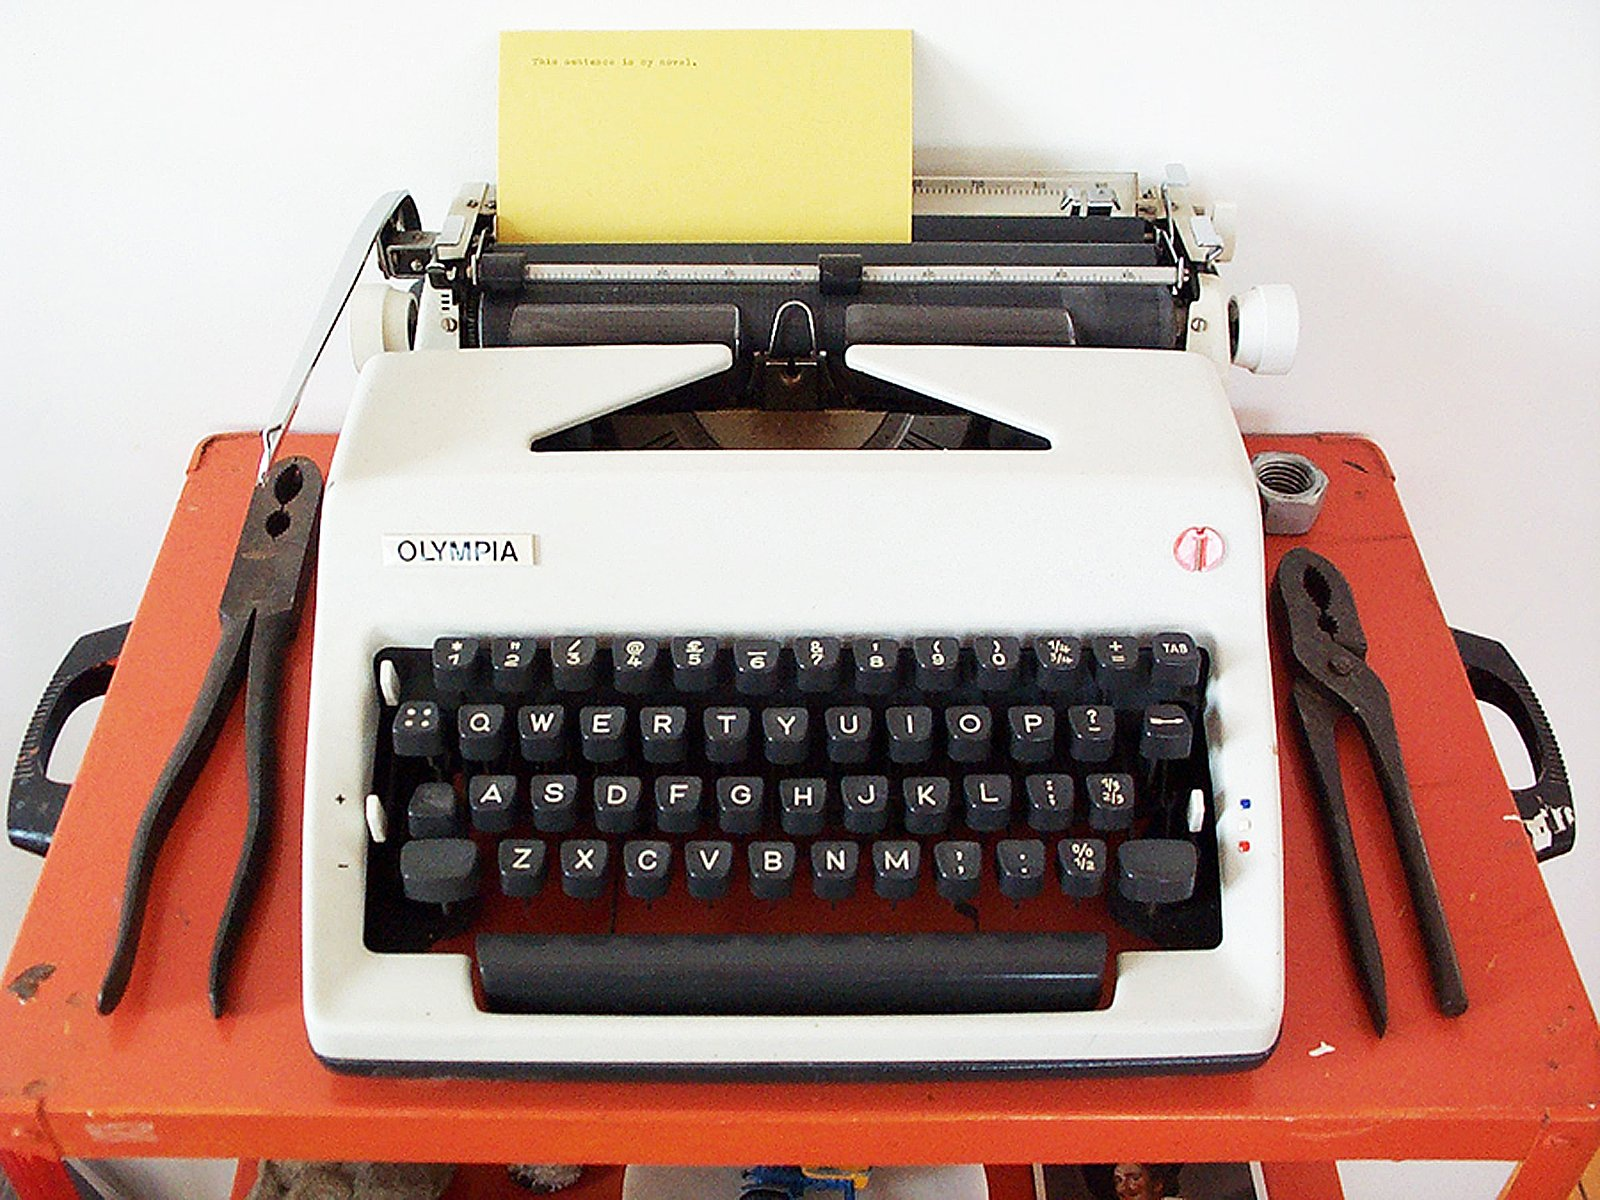 An Olympia typewriter with typed card and two pairs of pliers on an orange cart.